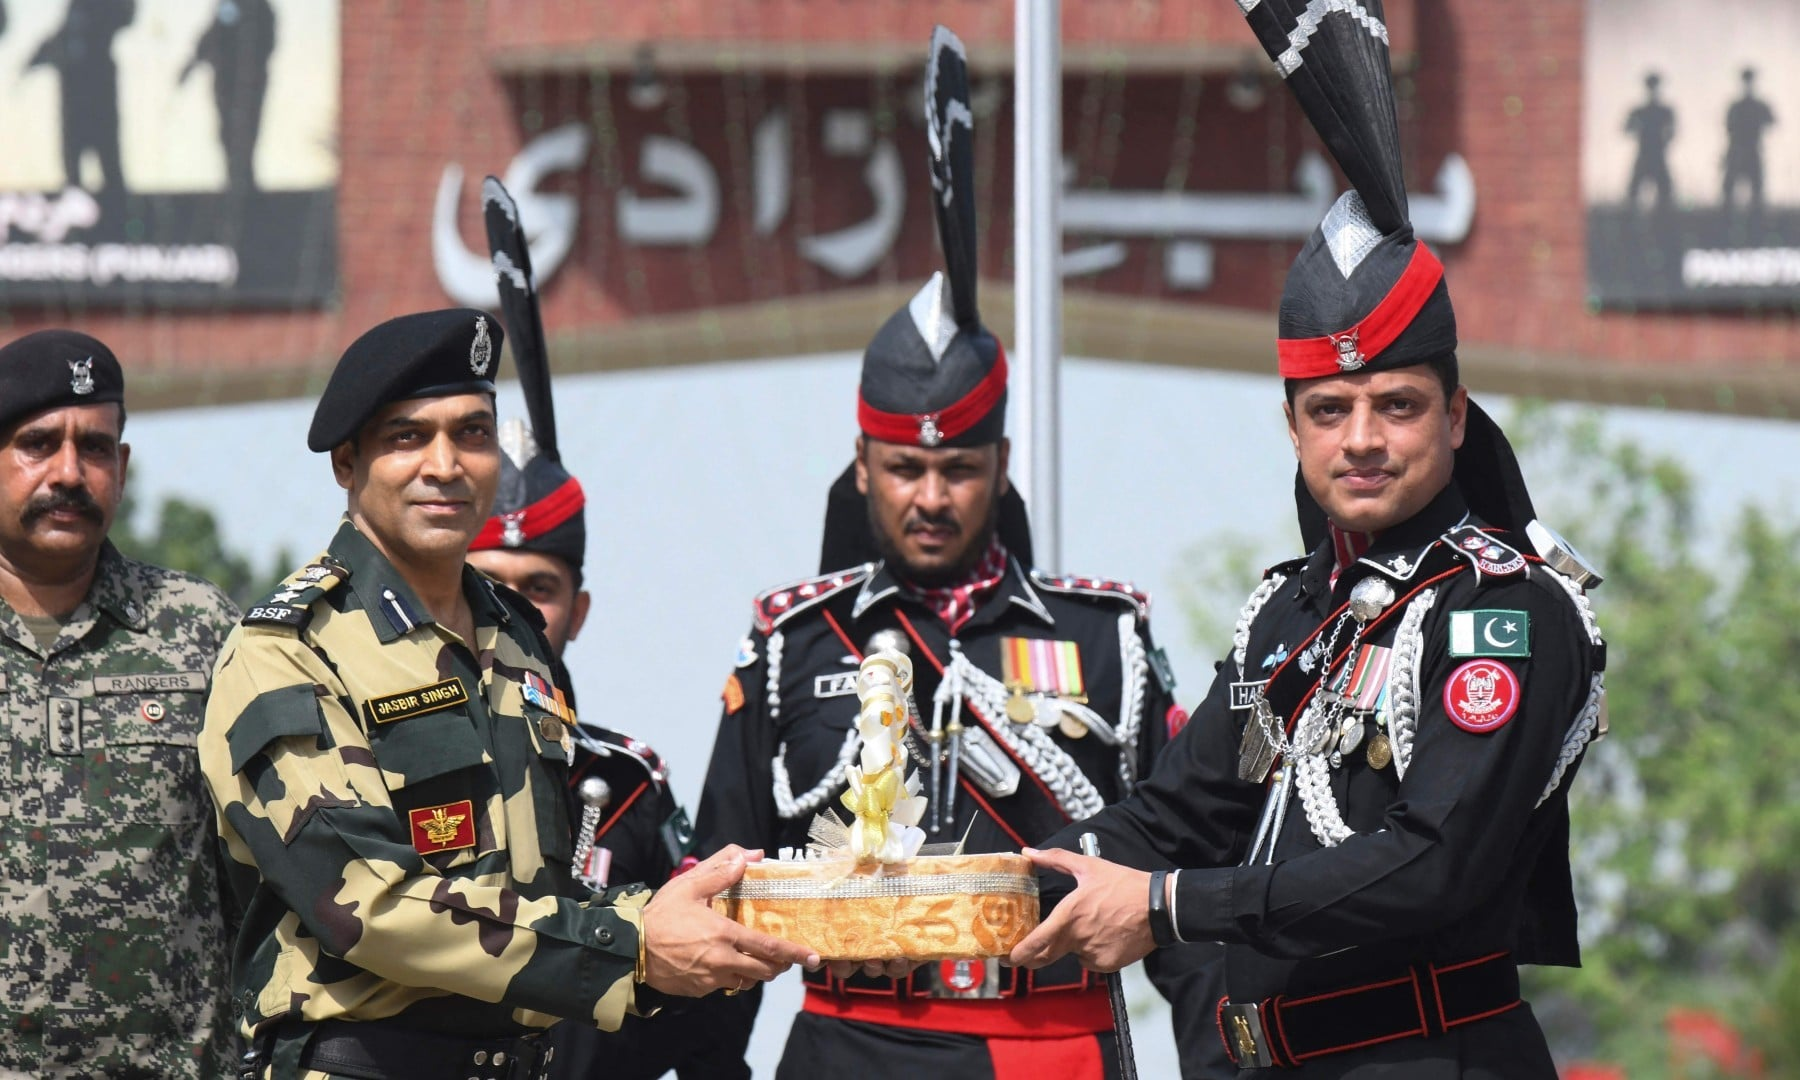 Pakistani Ranger Wing Commander Hassan (R) presents sweets to Indian Border Security Force (BSF) Commandant Jasbir Singh (2L) during a ceremony to celebrate Pakistan's 75th Independence Day at the India-Pakistan Wagah border post on August 14. — AFP